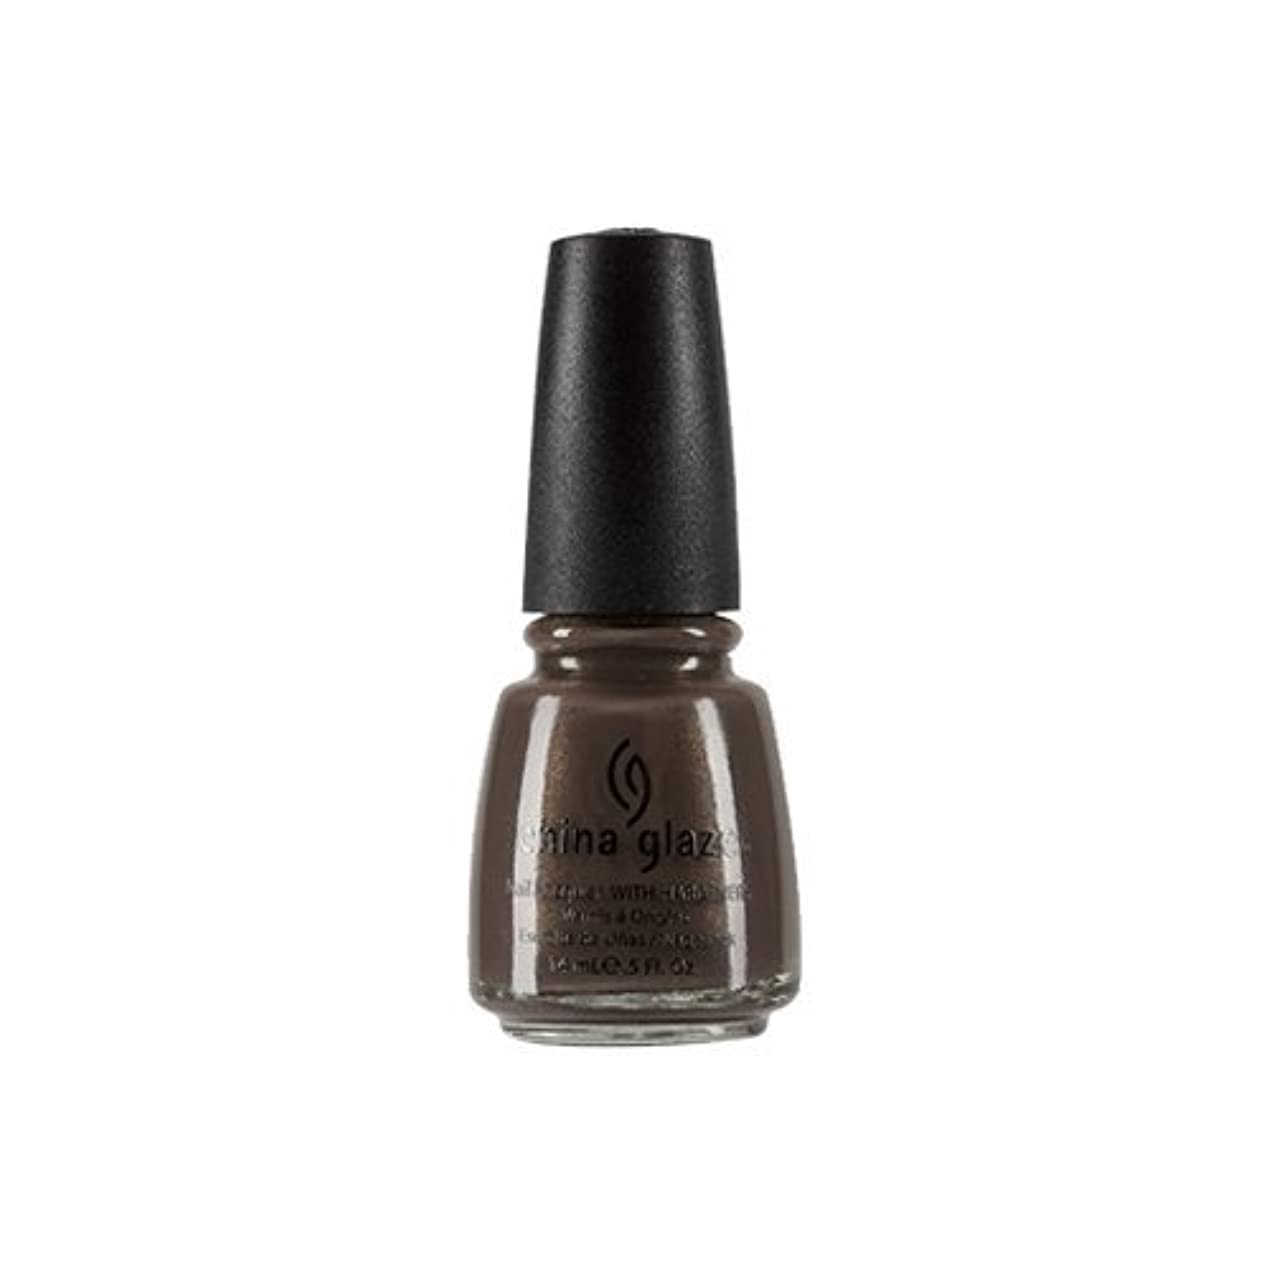 雹踊り子方法論China Glaze Nail Polish Ingrid 0.5 Fluid Ounce [並行輸入品]